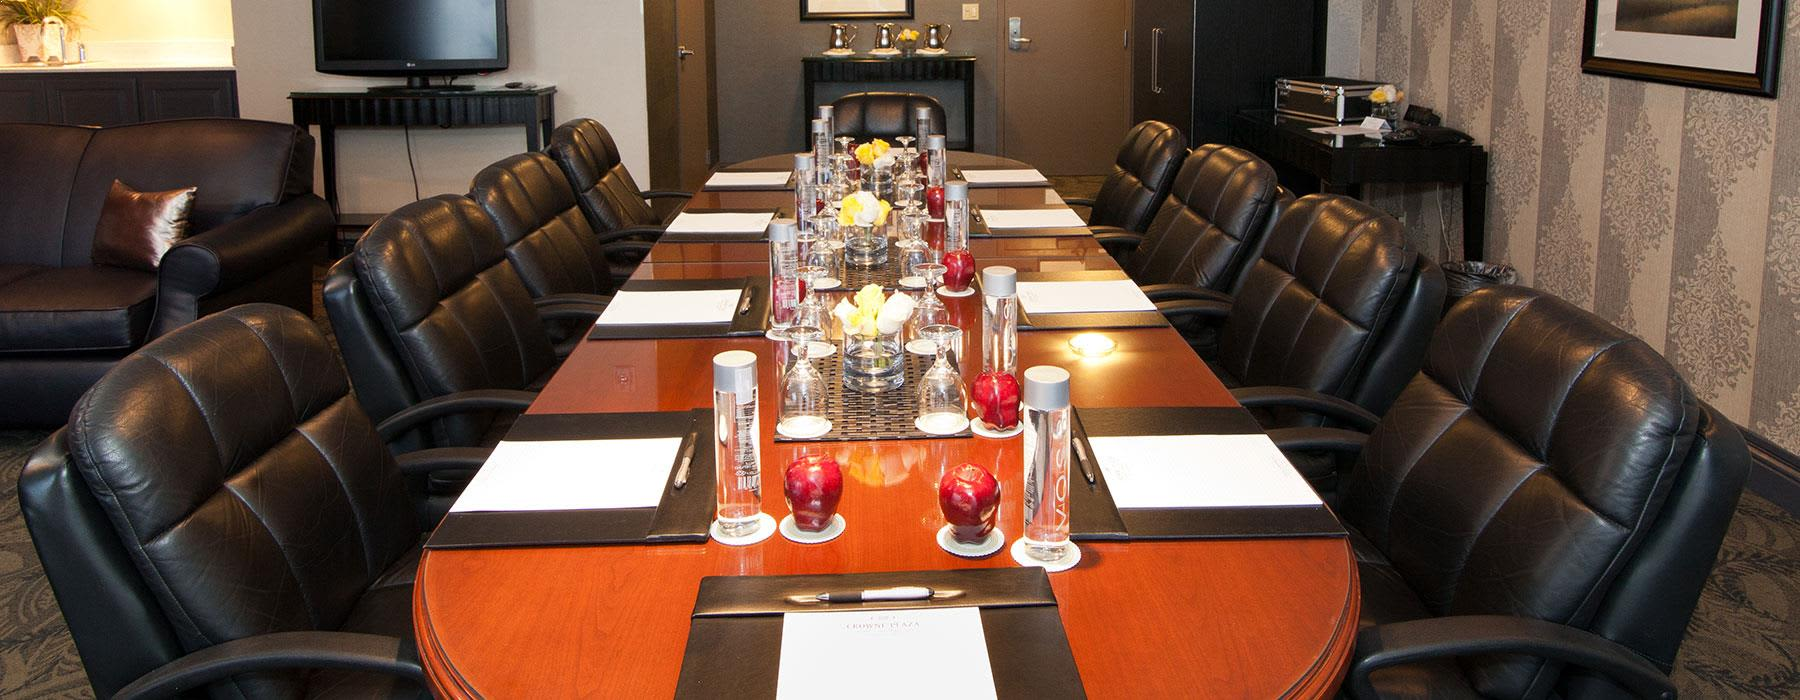 Complmentary Business Center at Crowne Plaza Costa Mesa OC